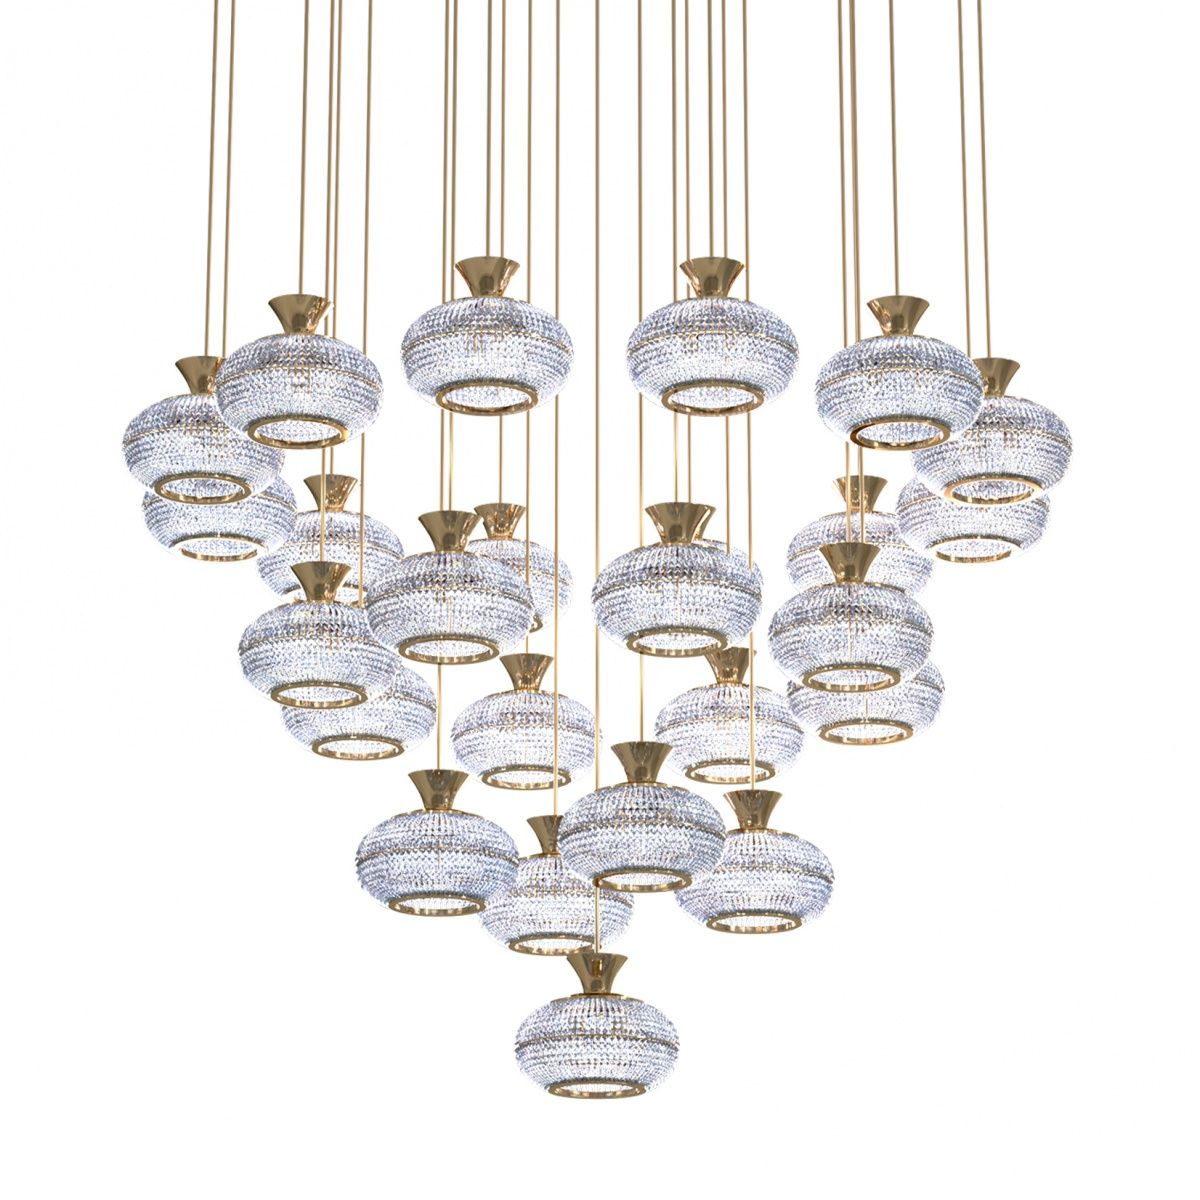 Luxury Vintage Crystal Chandelier Pendant Hanging Light Chandeliers Lamp for Home Hotel Decor